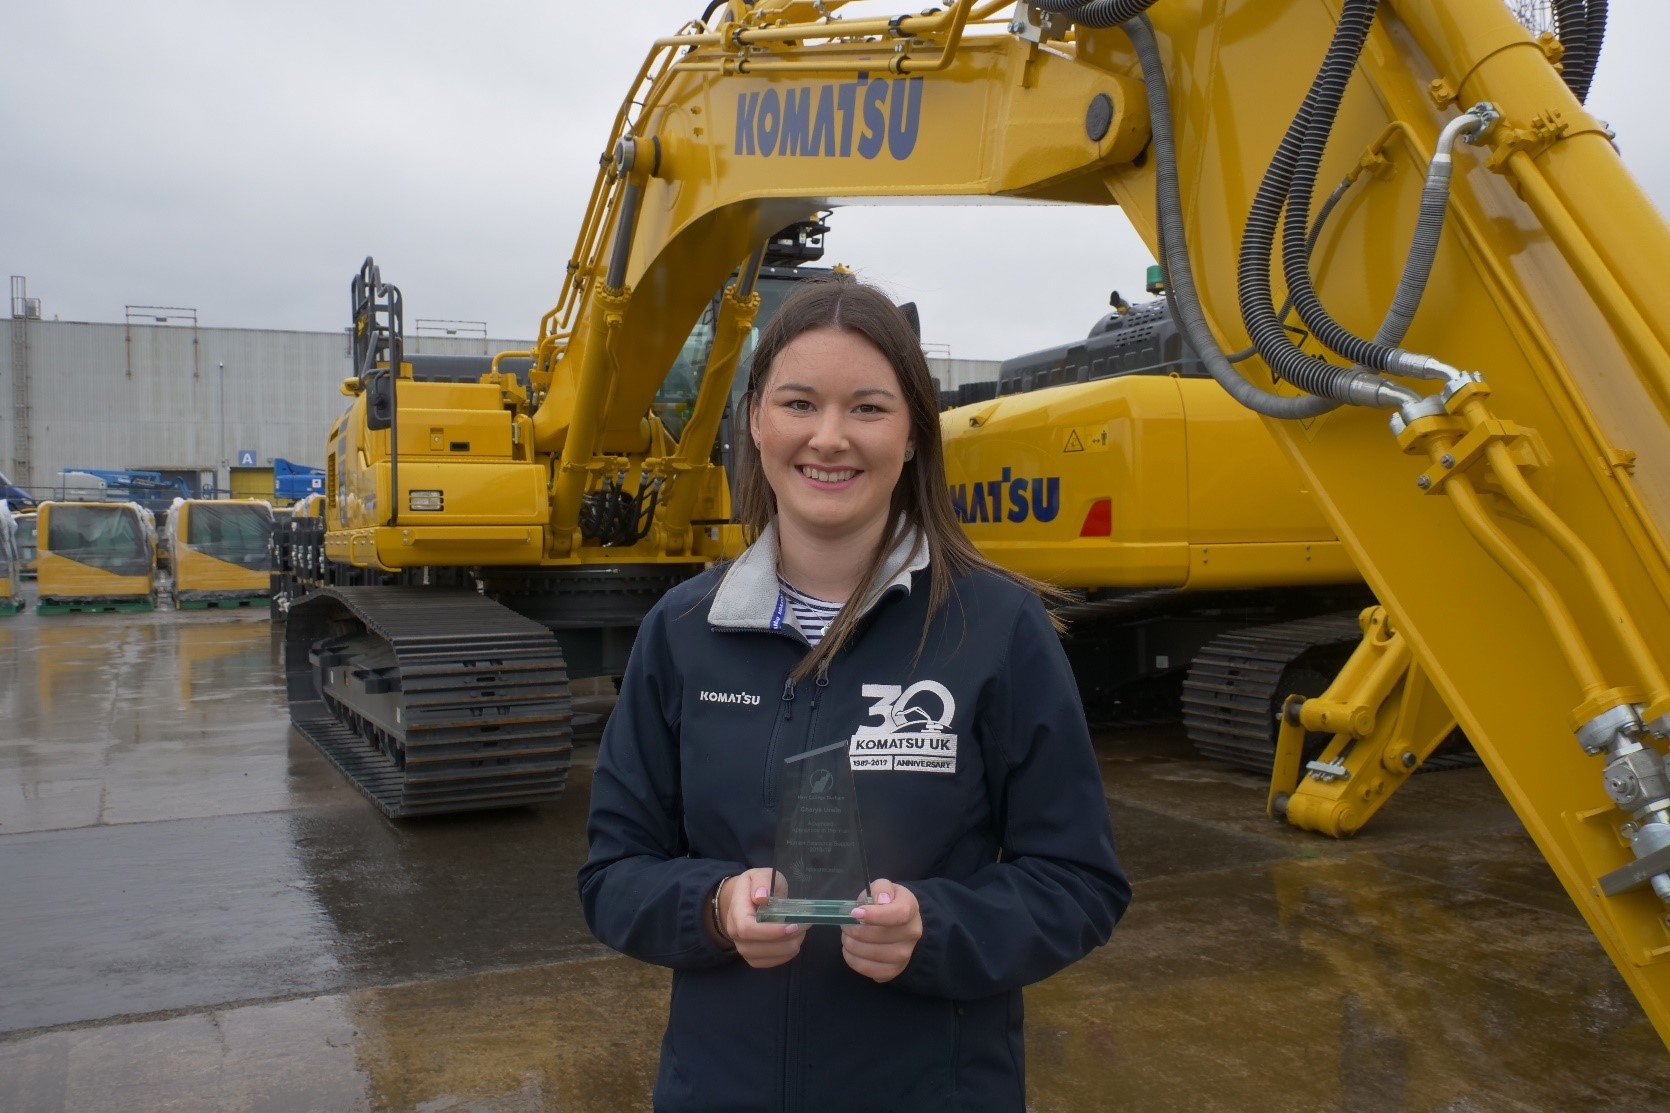 Komatsu UK's workforce